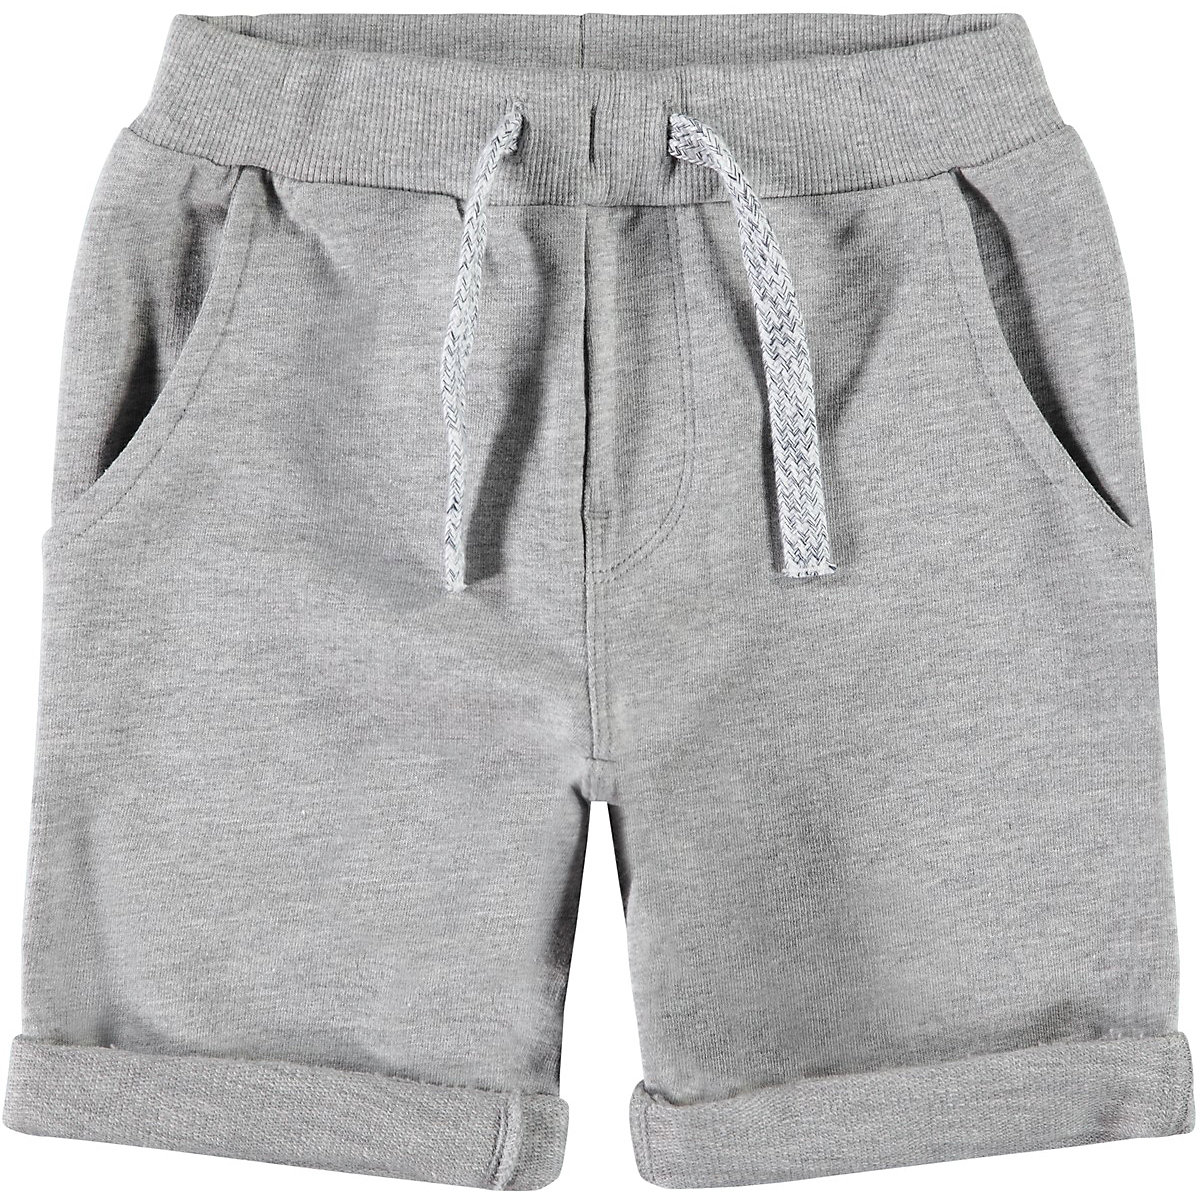 NAME IT Shorts 10623675 for boys and girls child sport for teenagers clothes Cotton Elastic Waist Boys